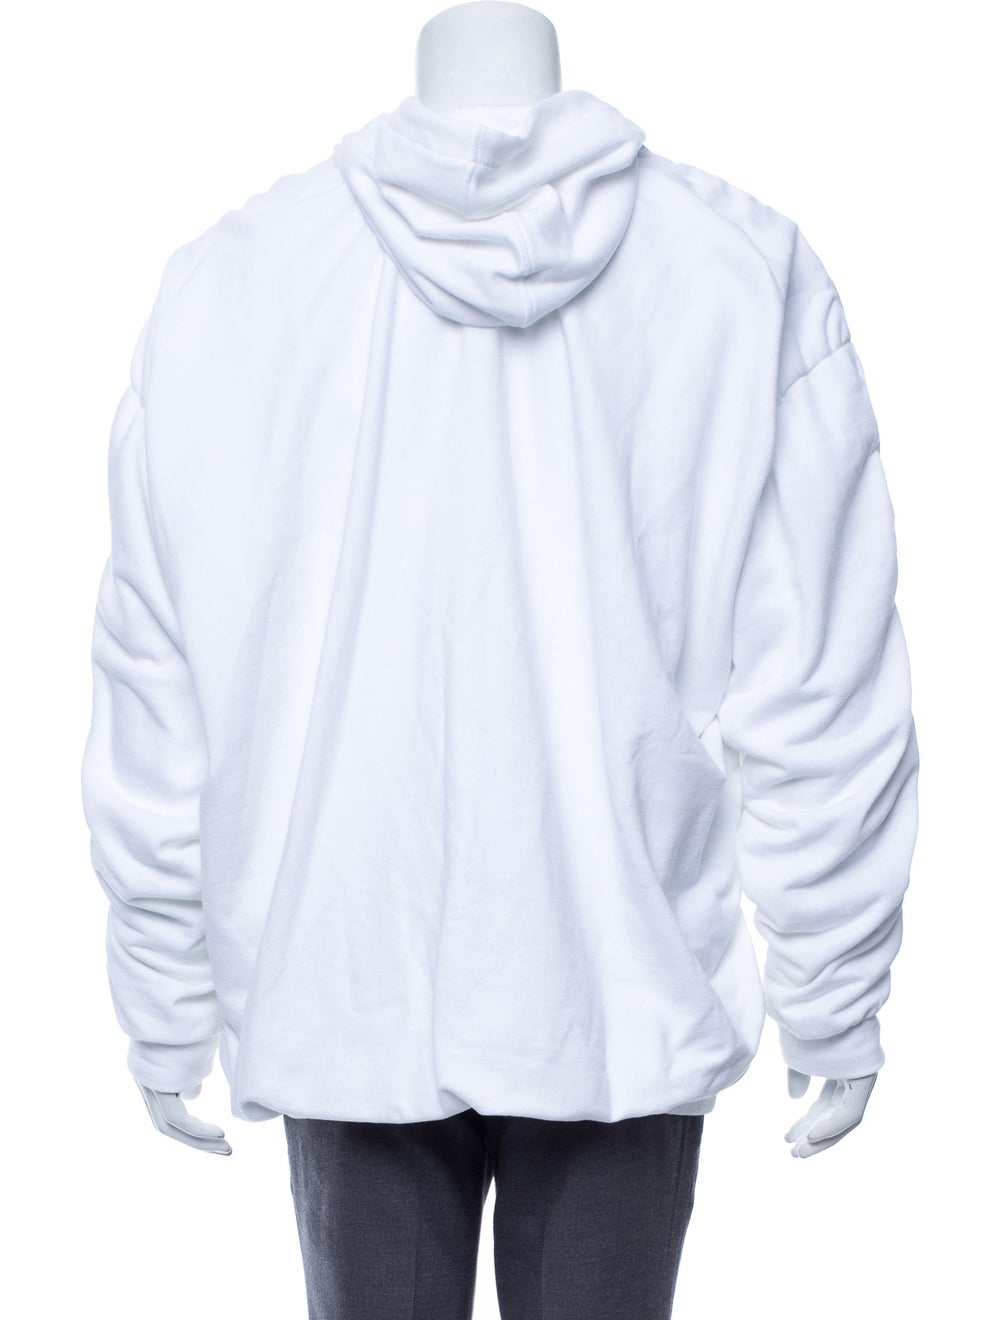 Y/Project 2019 Reversible Hoodie white - image 3